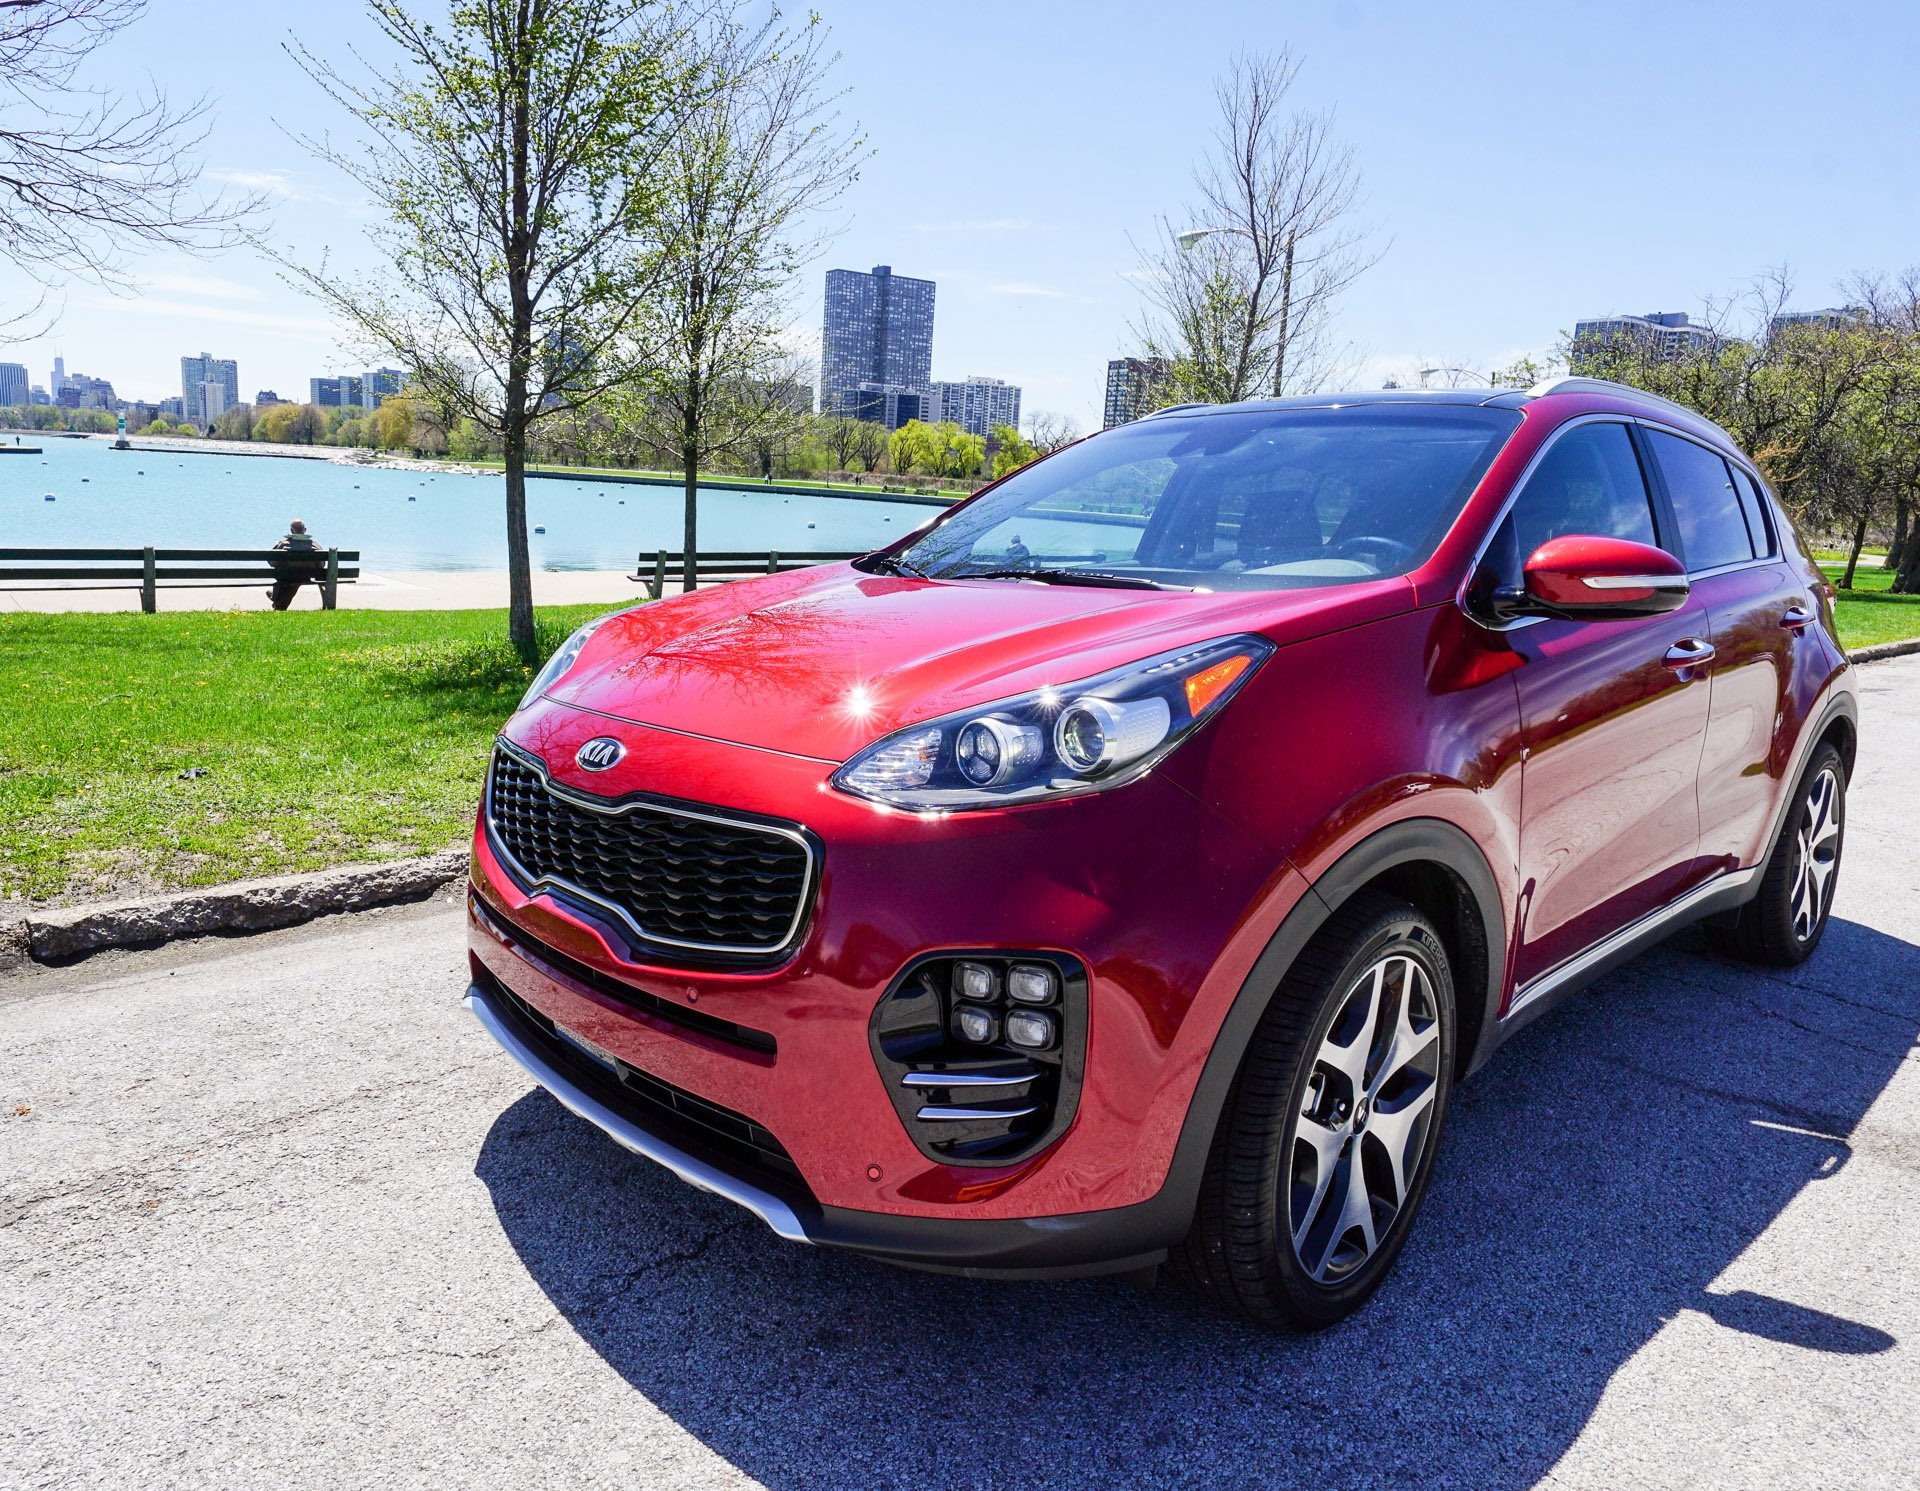 2017 Kia Sportage Sx Turbo Review moreover 2018 Bmw X3 M Spied For The First Time as well Mini John Cooper Works Rally Racer Unveiled 171147 likewise Audi Q5 hybrid 2013 besides 2017 Bmw M4 Coupe Spied With Minor Updates. on bmw turbo 4 cylinder review